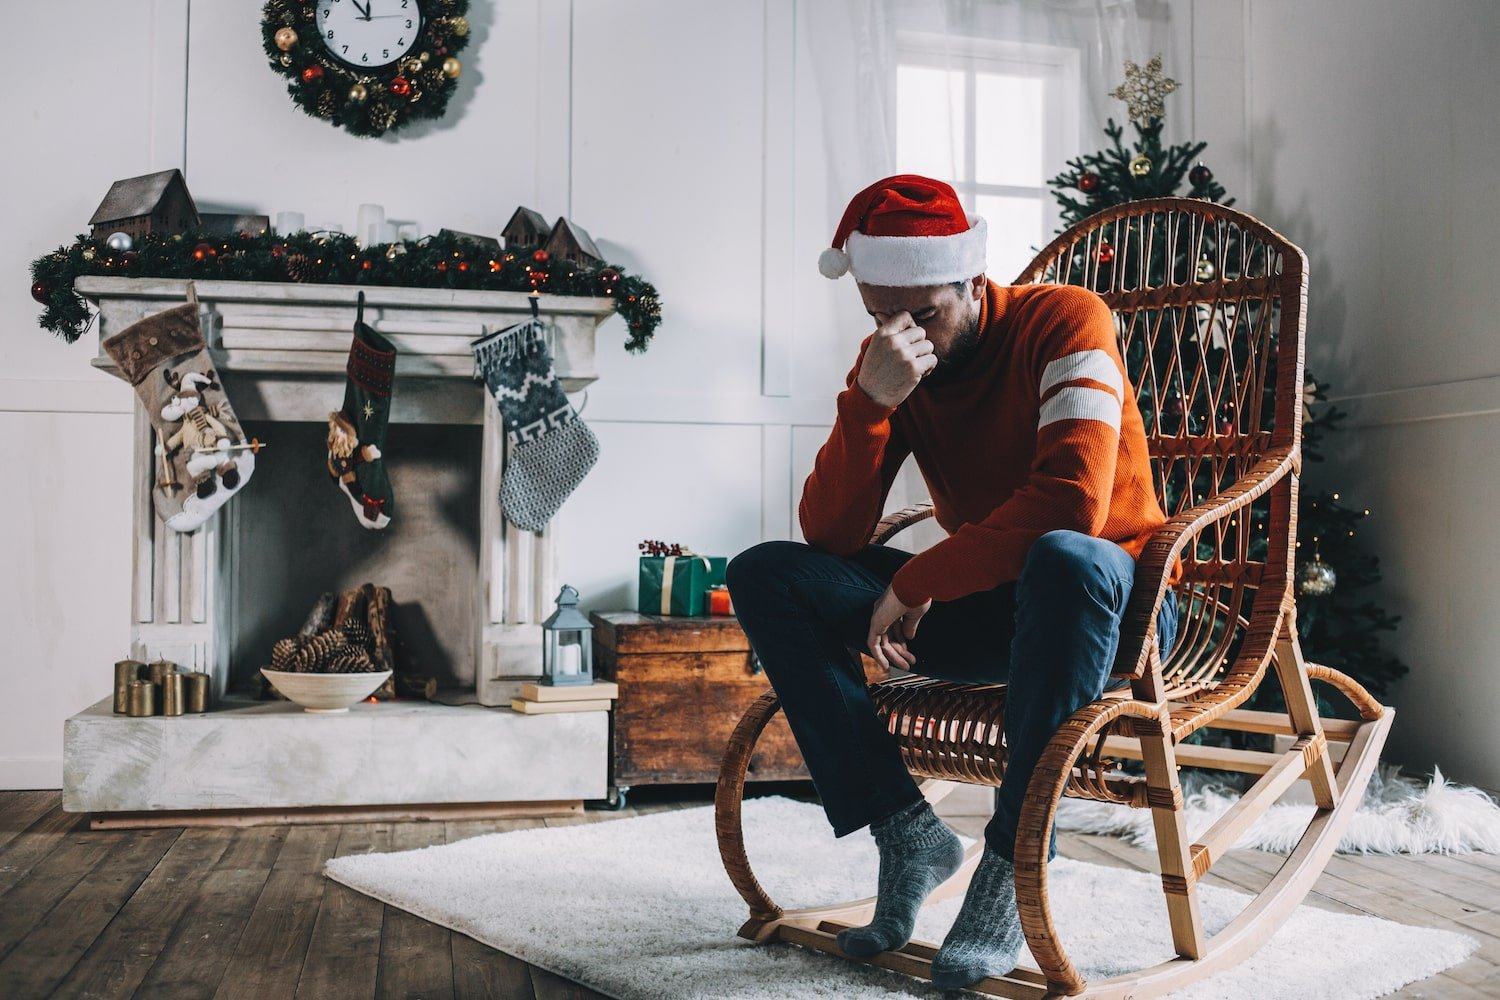 Recovering addict struggling during the holidays